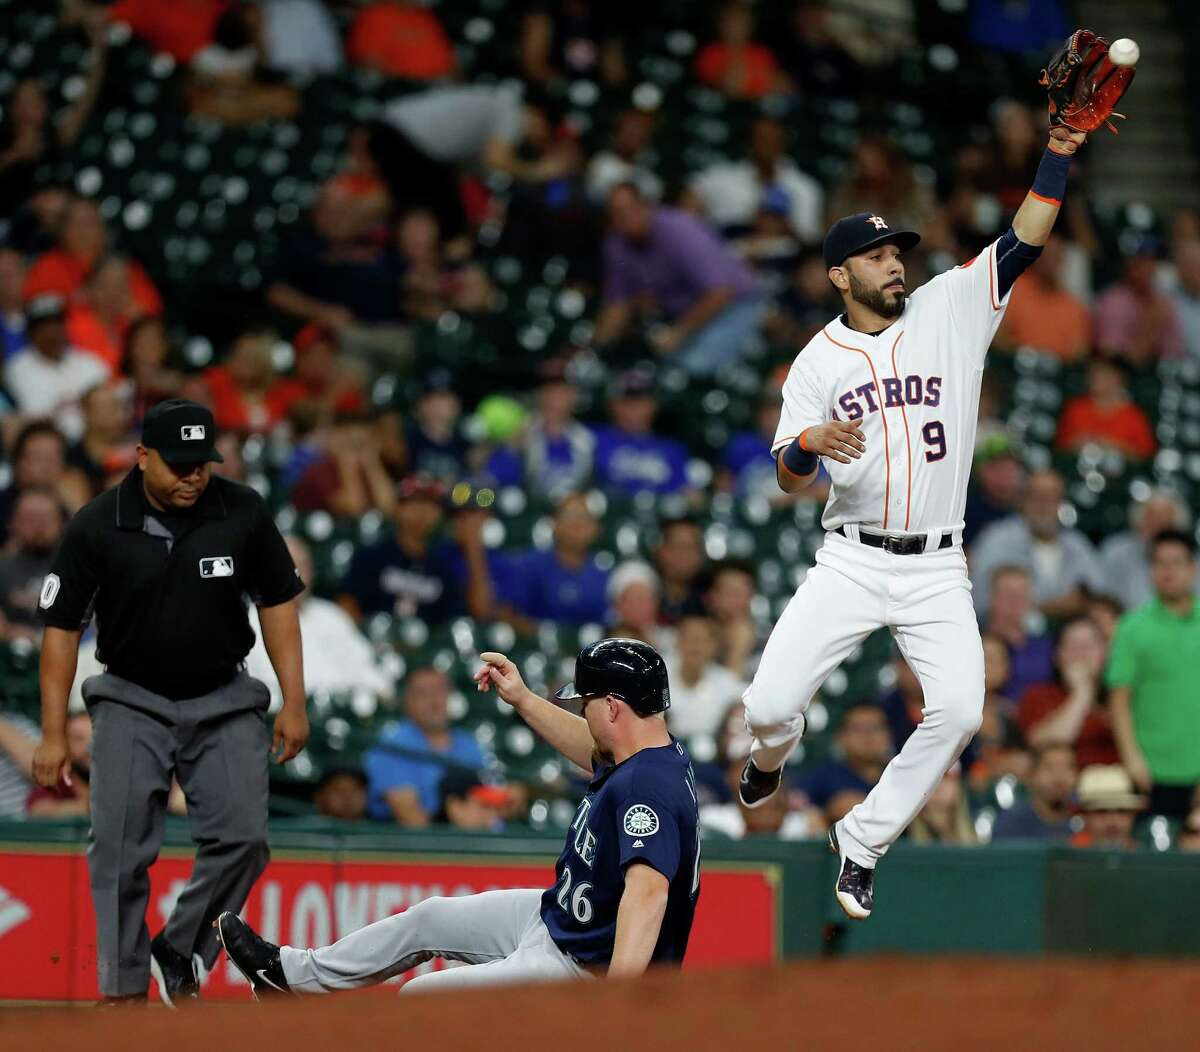 Houston Astros third baseman Marwin Gonzalez (9) tries to get the tag on Seattle Mariners Adam Lind (26) at third base in the second inning of an MLB game at Minute Maid Park, Monday, Sept. 26, 2016 in Houston. ( Karen Warren / Houston Chronicle )